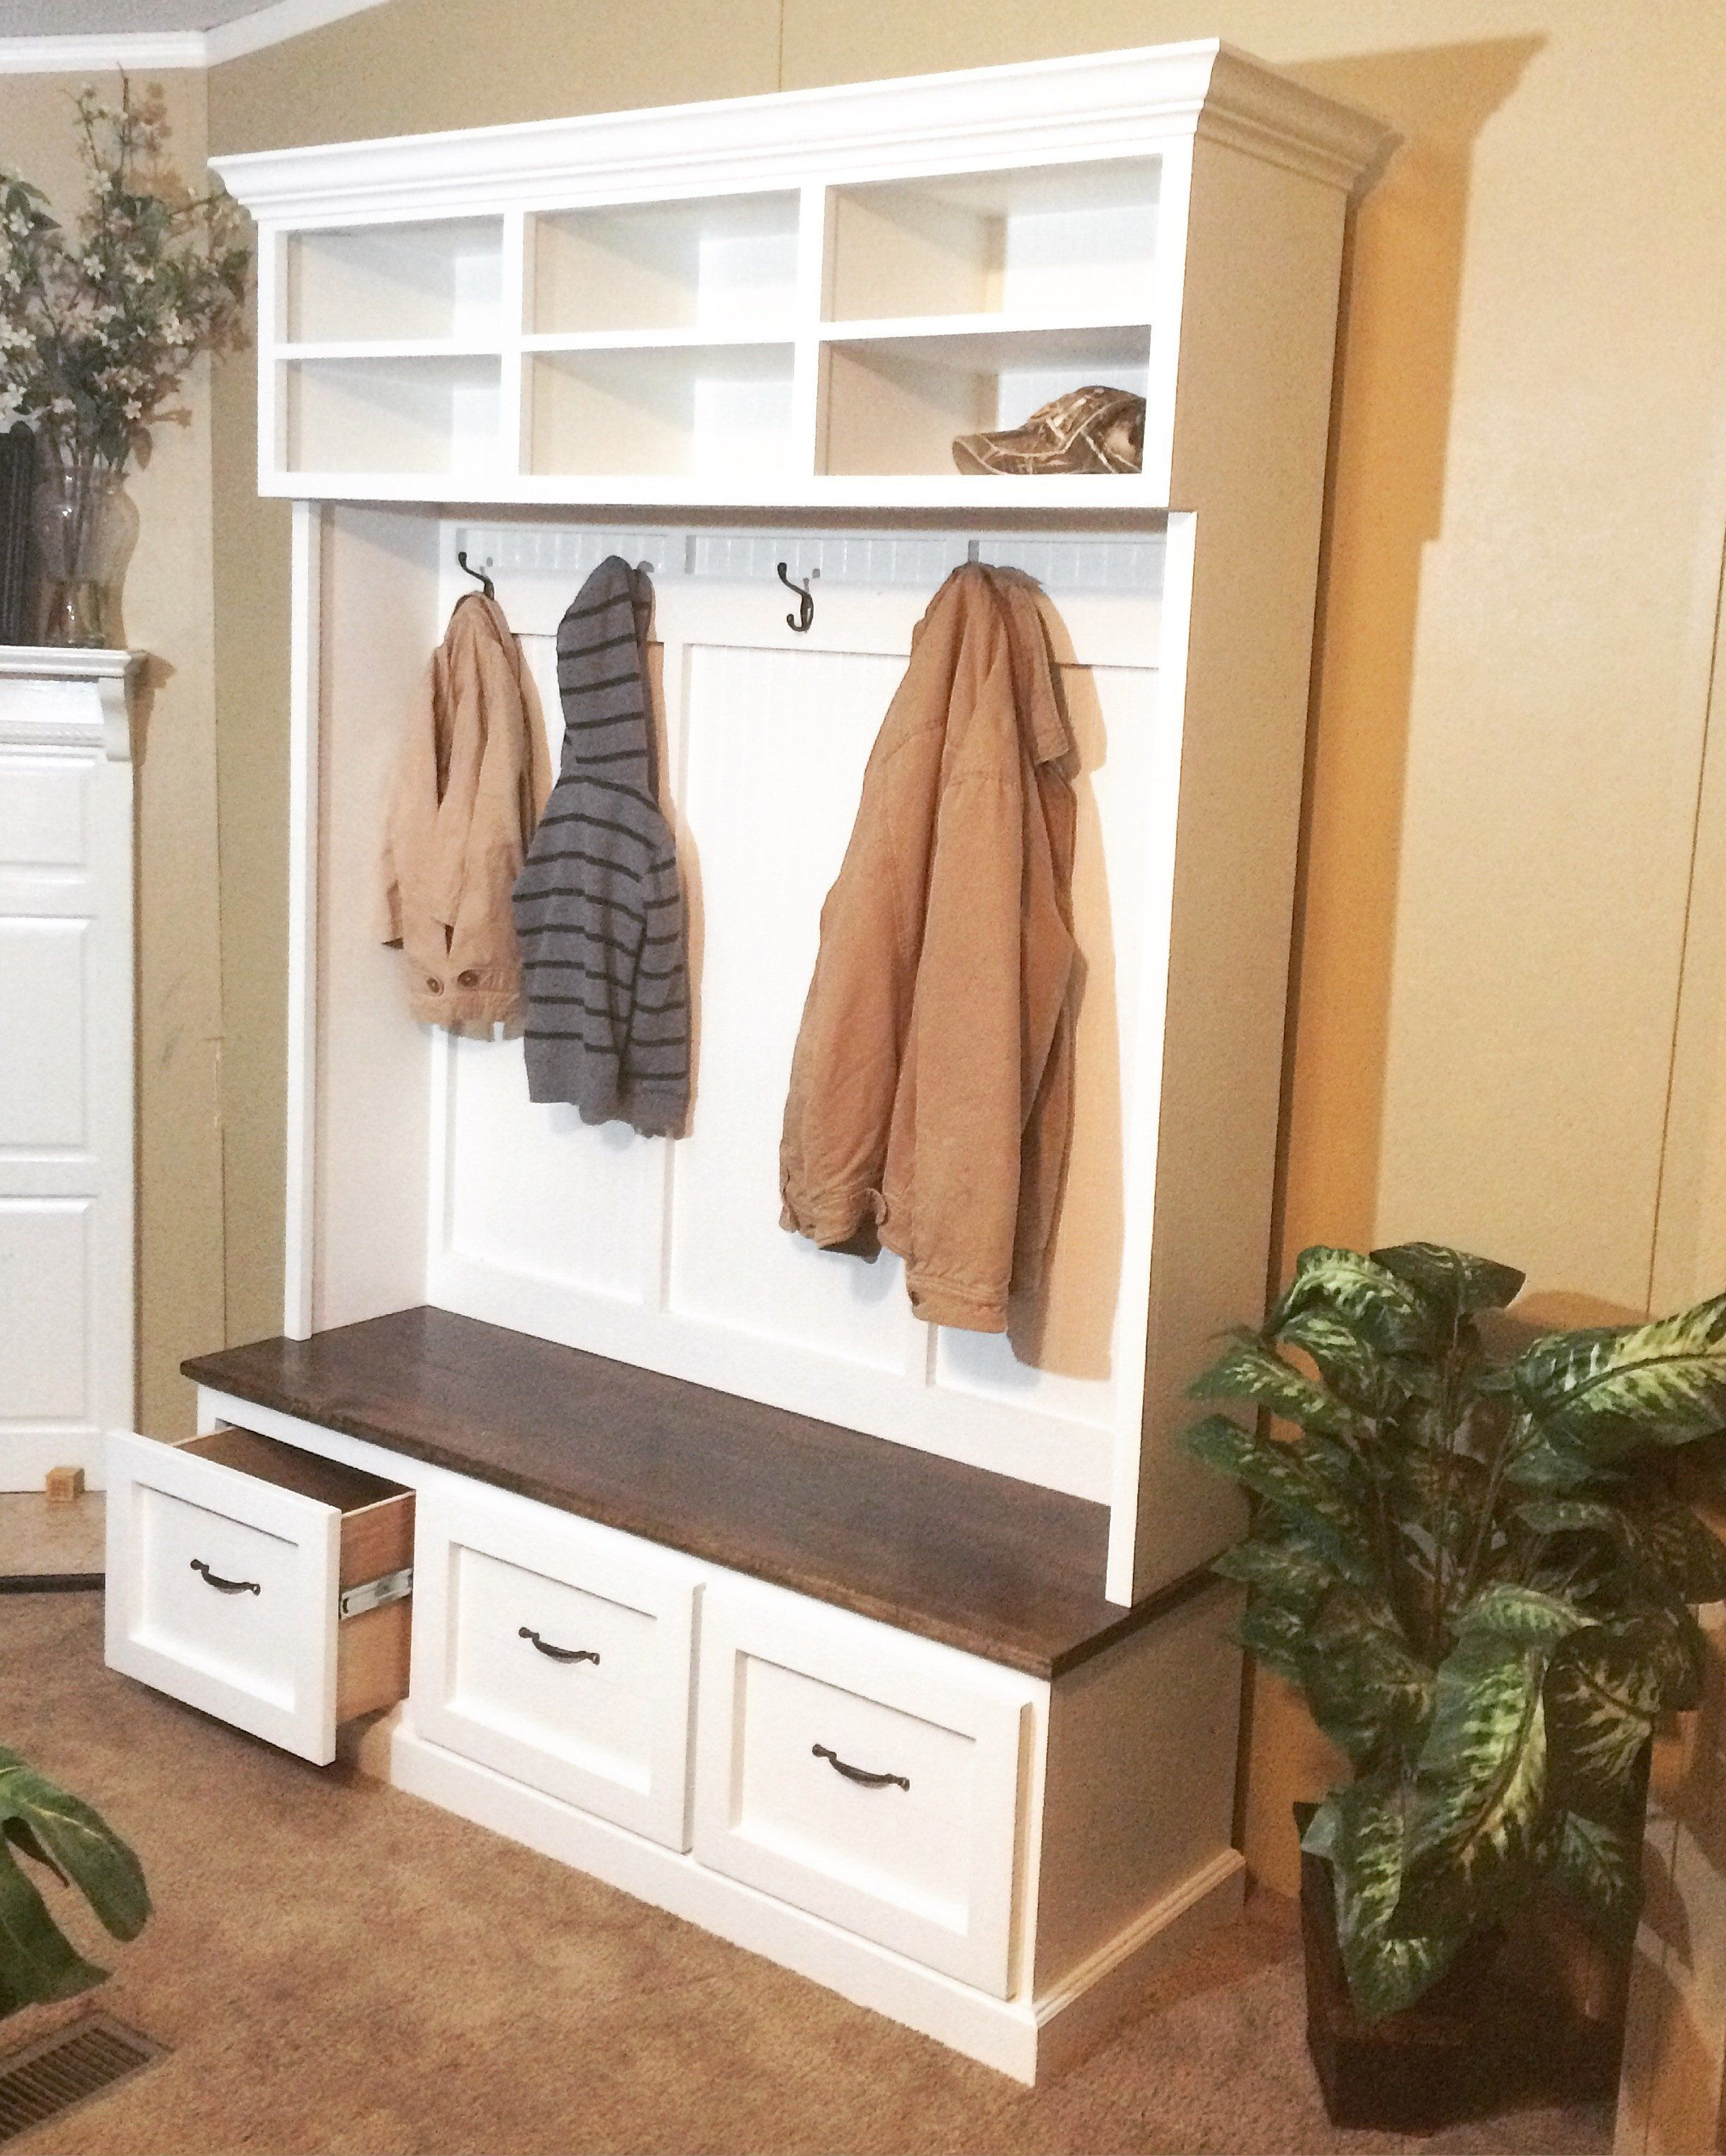 Hallway storage rack  Entryway bench with shoe storage coat rack and storage compartments